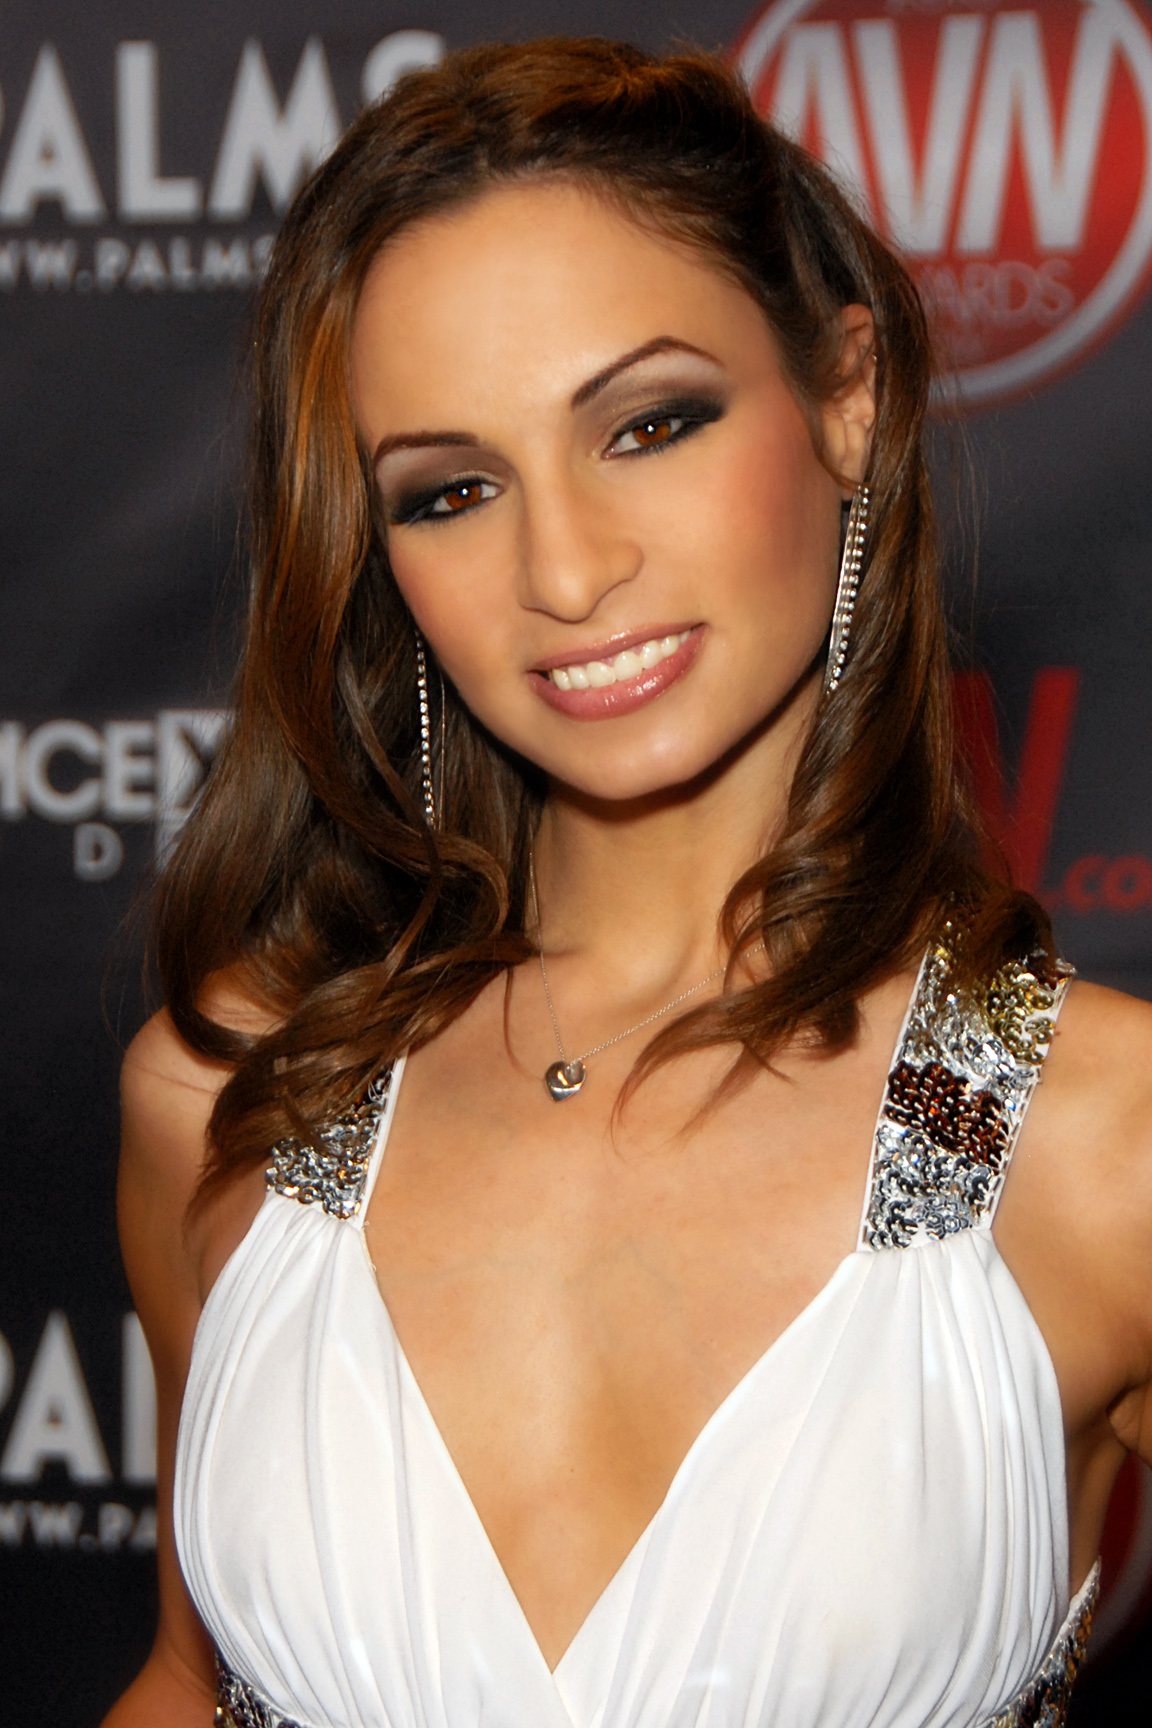 Meghan Wren (September 19, 1984 – April 2, 2016), known professionally as Amber Rayne, was an American pornographic actress. She died of an accidental drug overdose in April 2016. (Photo by Toglenn)